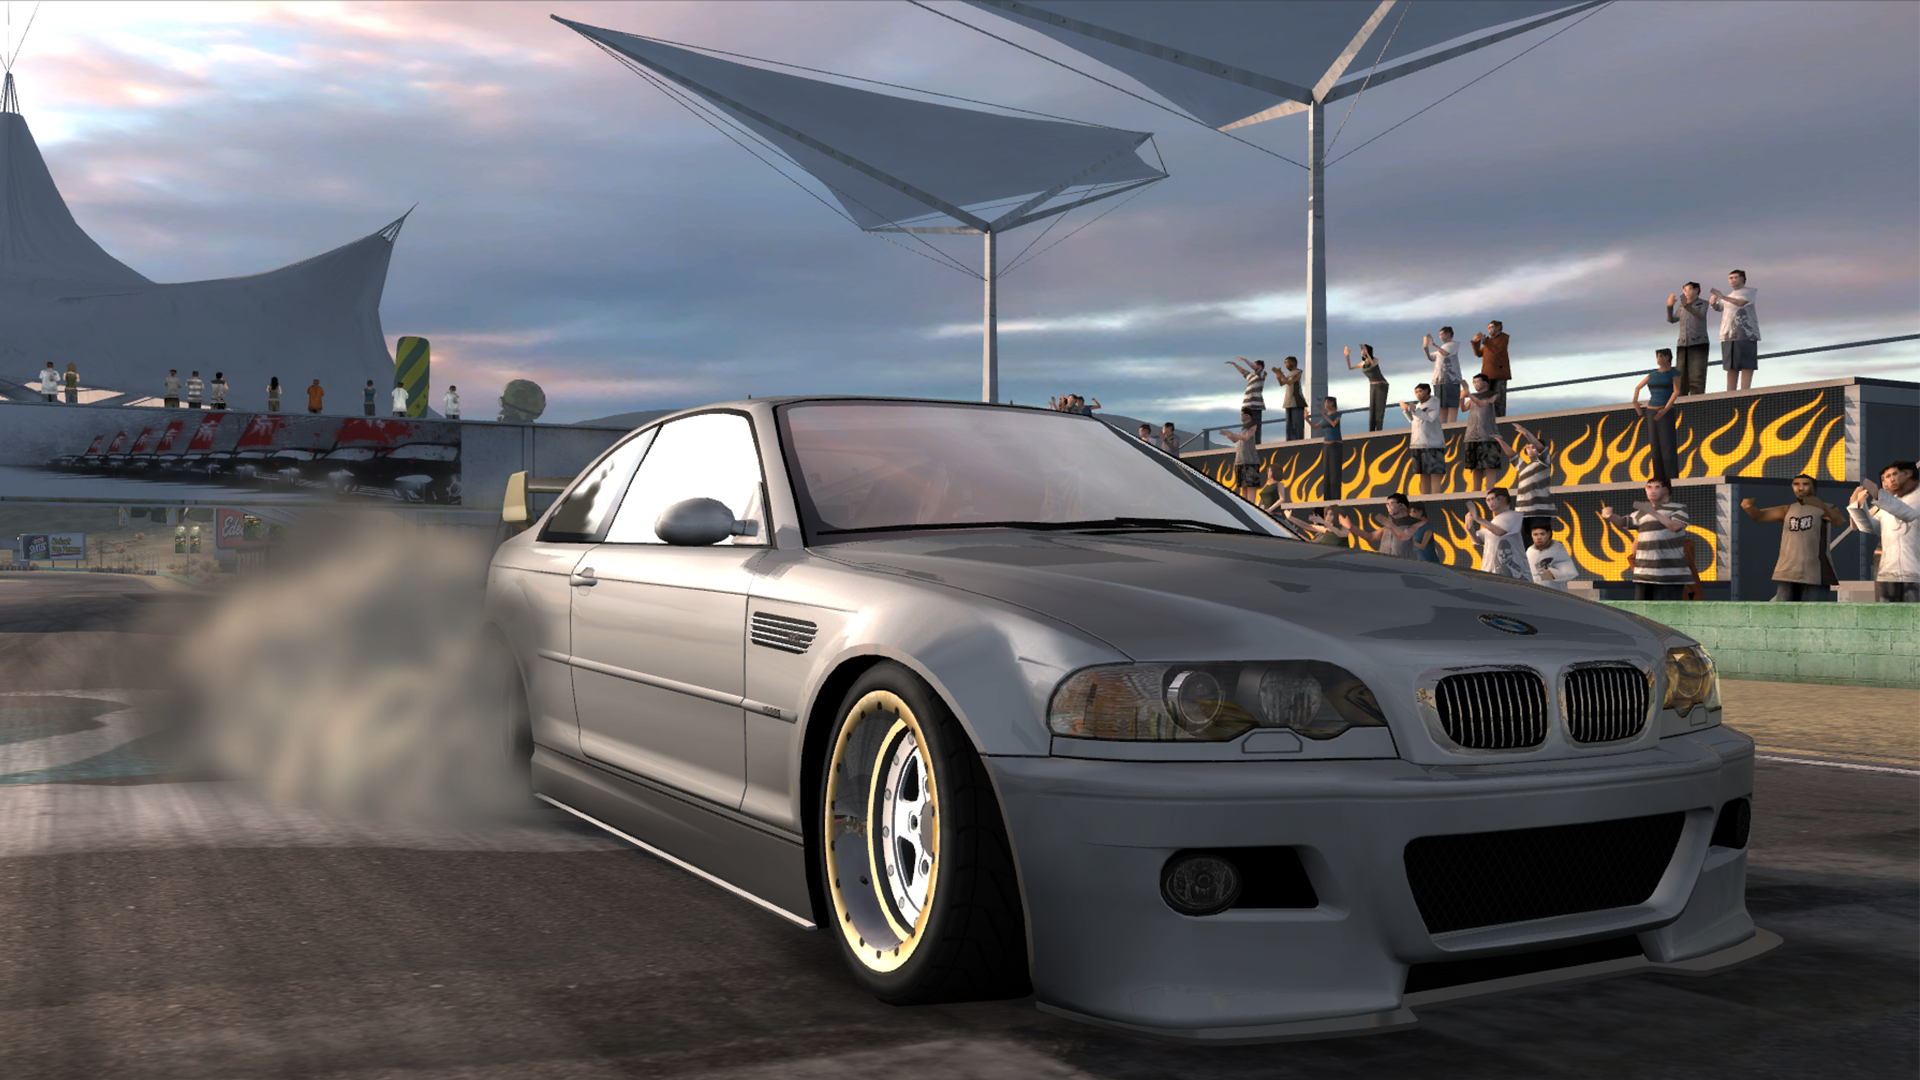 who thinks that nfs prostreet is really underrated? i think it was